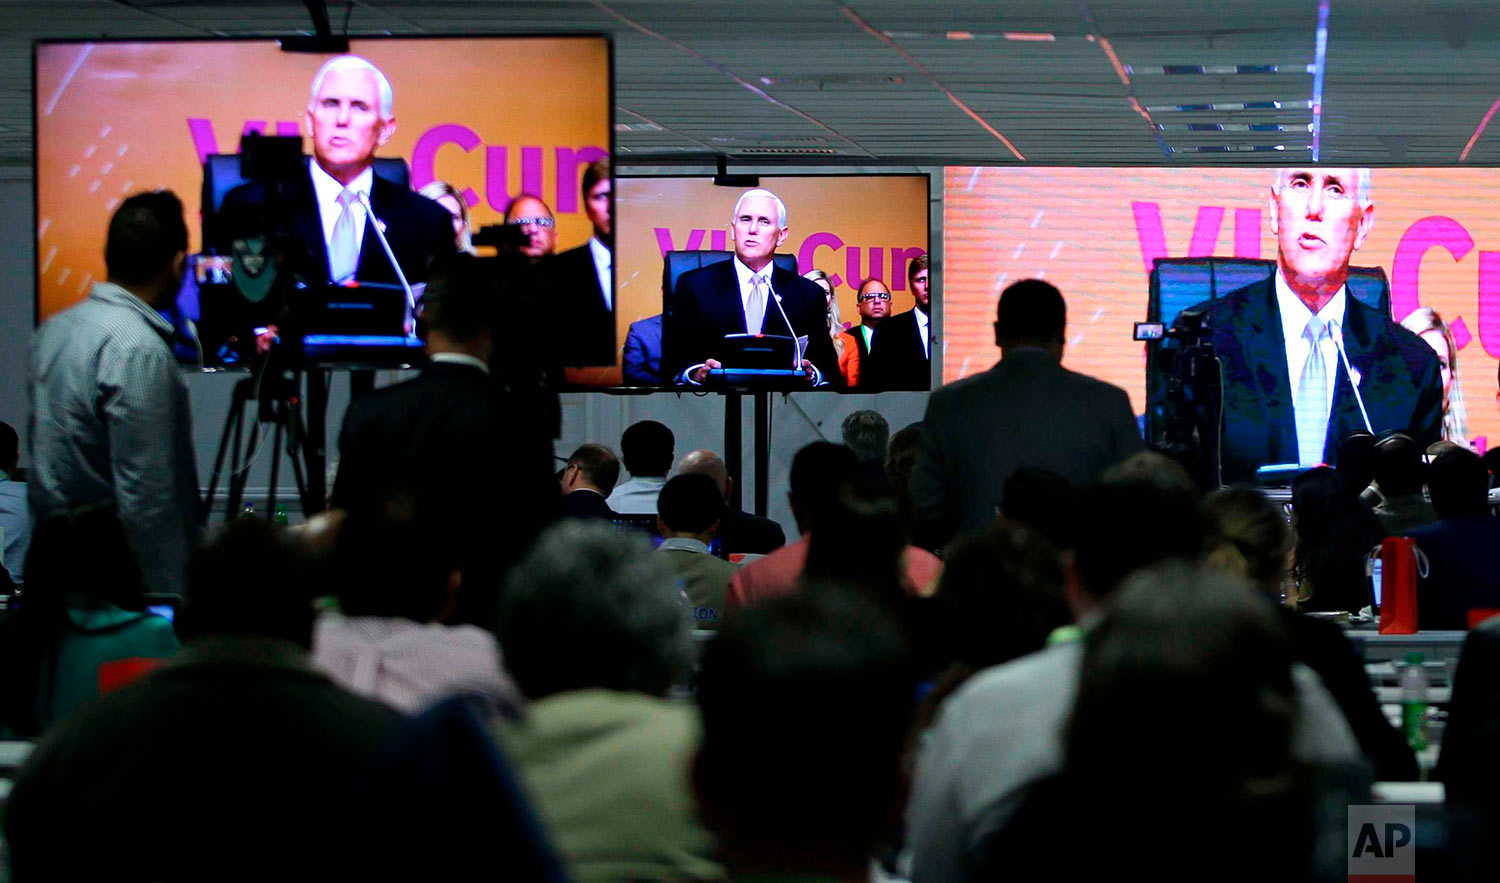 """U.S. Vice President Mike Pence speaks during the plenary session at the Americas Summit in Lima, Peru, April 14, 2018. Pence praised Peru's """"strong stand"""" on the """"tyranny and humanitarian crisis"""" in Venezuela, and said that he was grateful for Peruvian President Mart�n Vizcarra's role in withdrawing Venezuelan President Nicolas Maduro's invitation to the summit. (AP Photo/Martin Mejia)"""